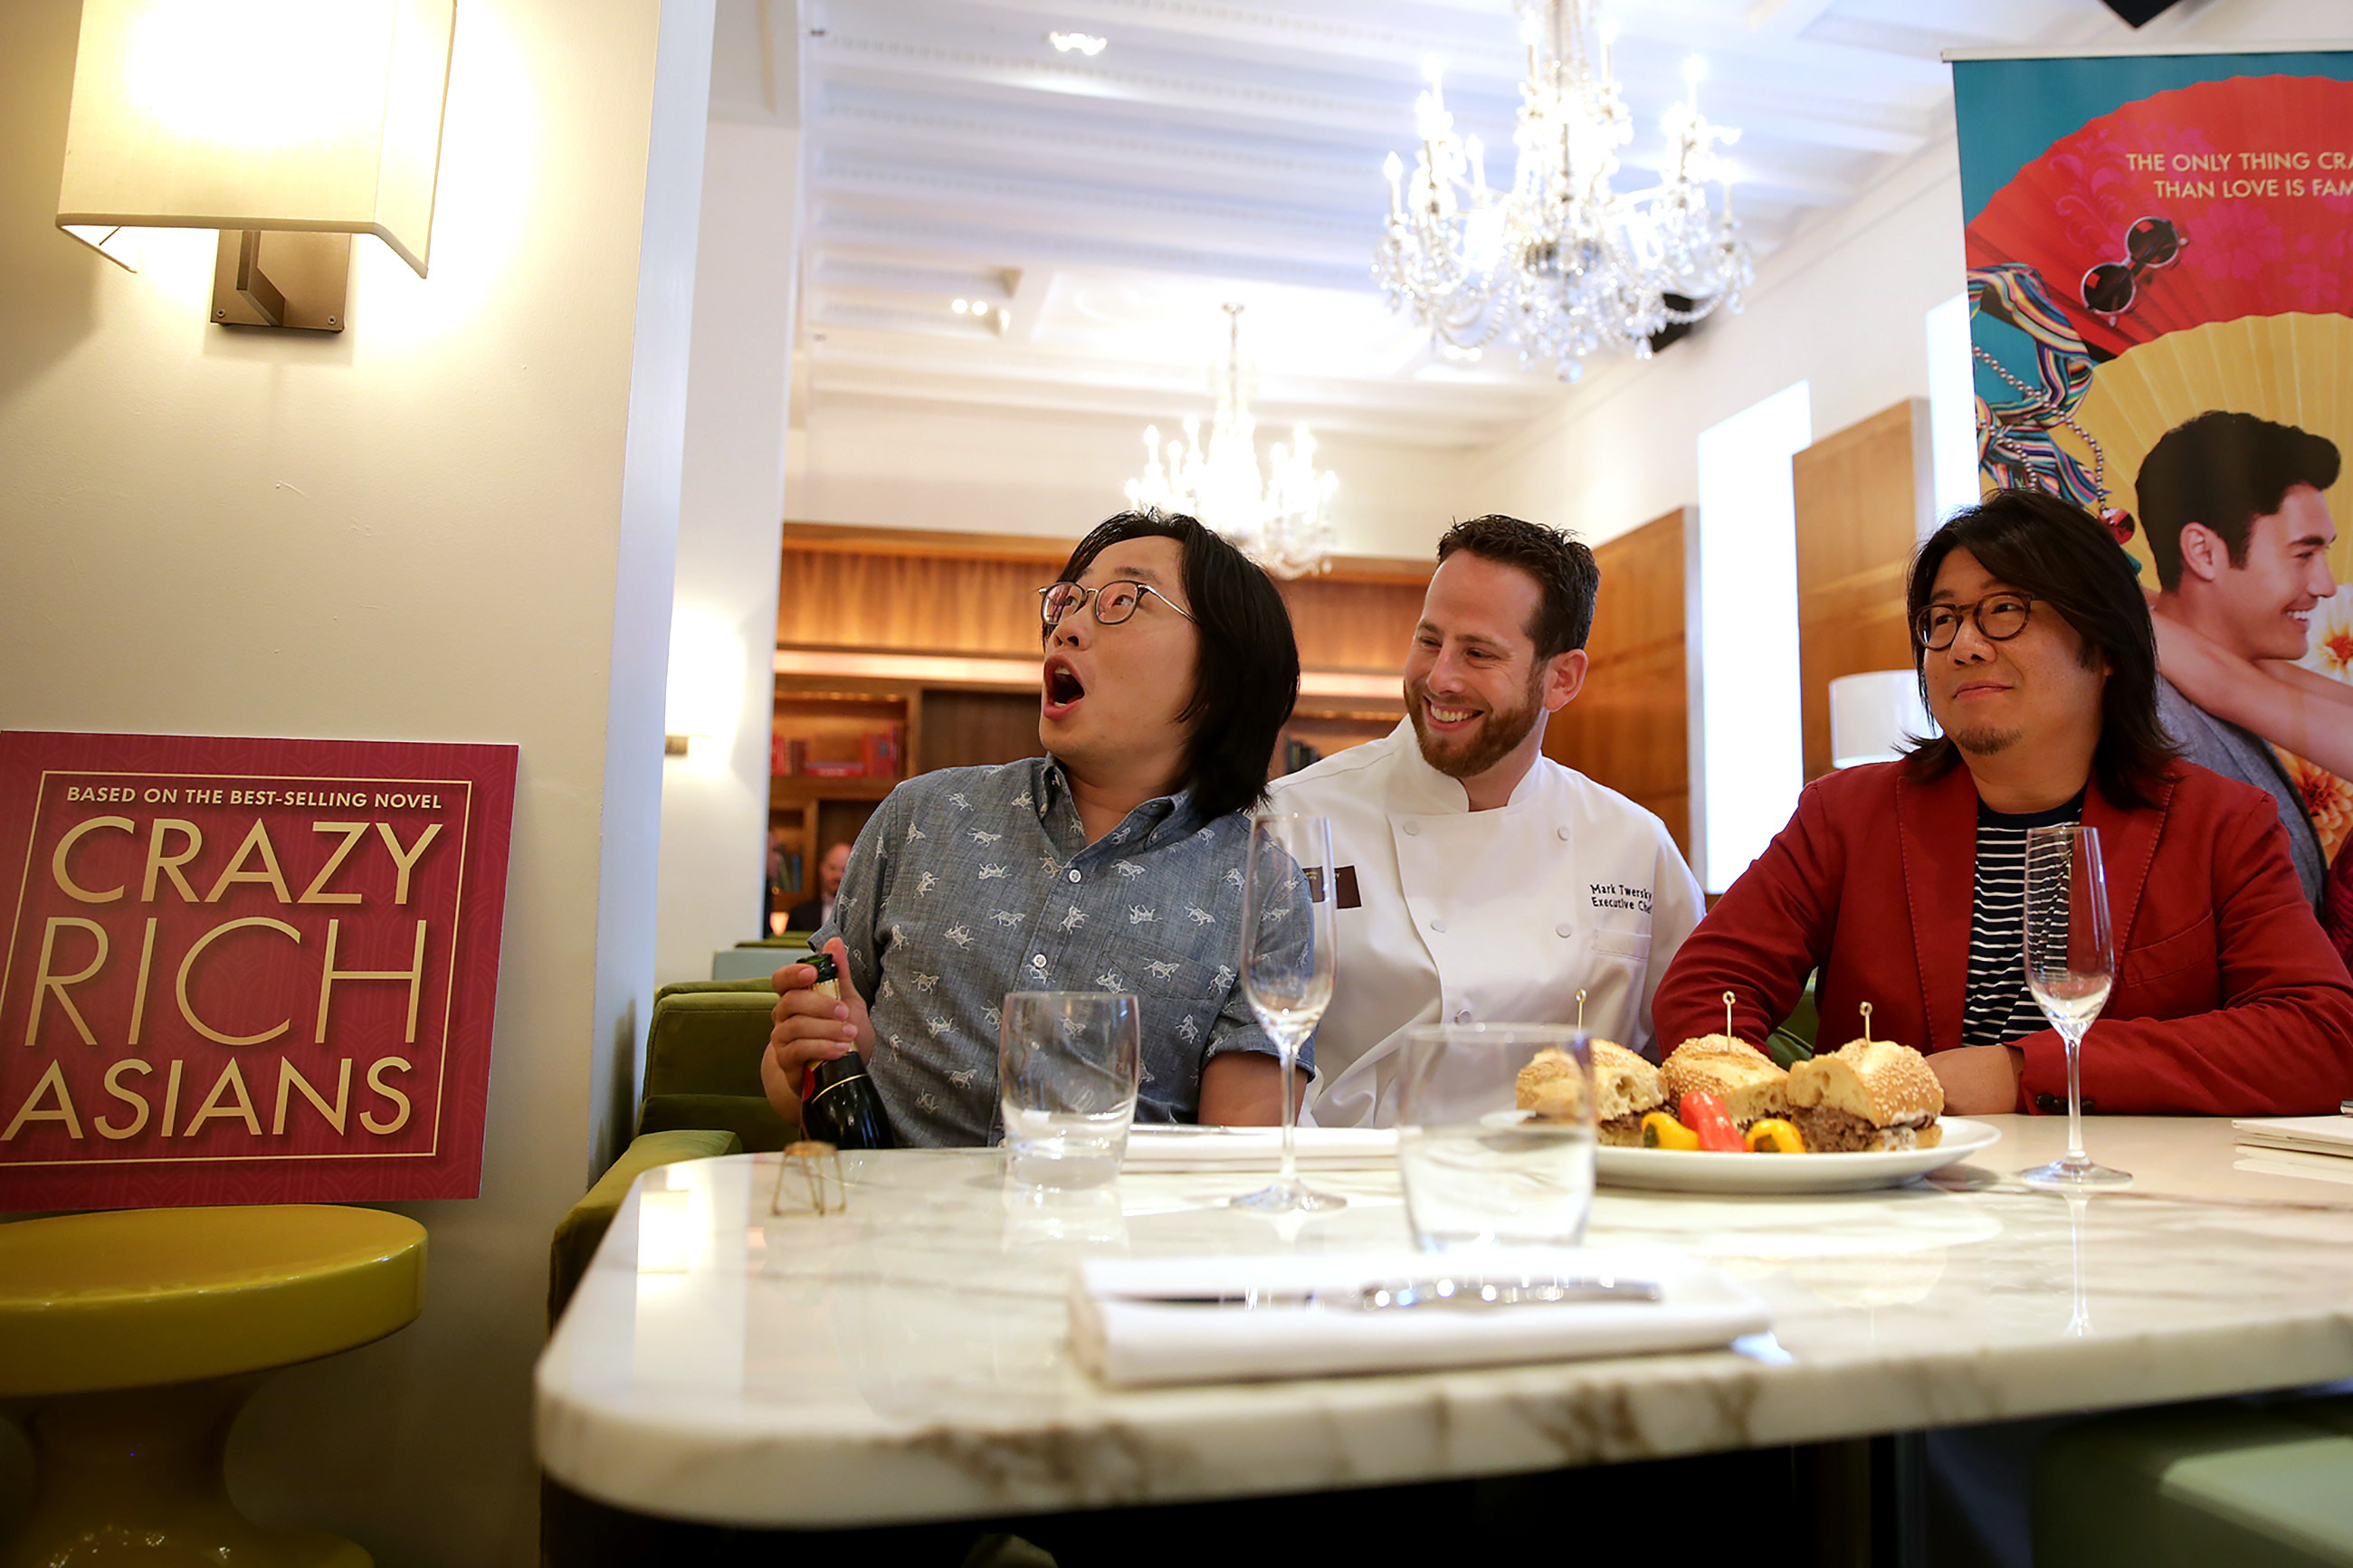 "Actor Jimmy O. Yang, left, reacts to popping open a bottle of champagne as Chef Mark Twersky, center, and writer Kevin Kwan, right, watch during a promotional event for the movie ""Crazy Rich Asians"" at Barclay Prime in Philadelphia, PA on July 31, 2018."